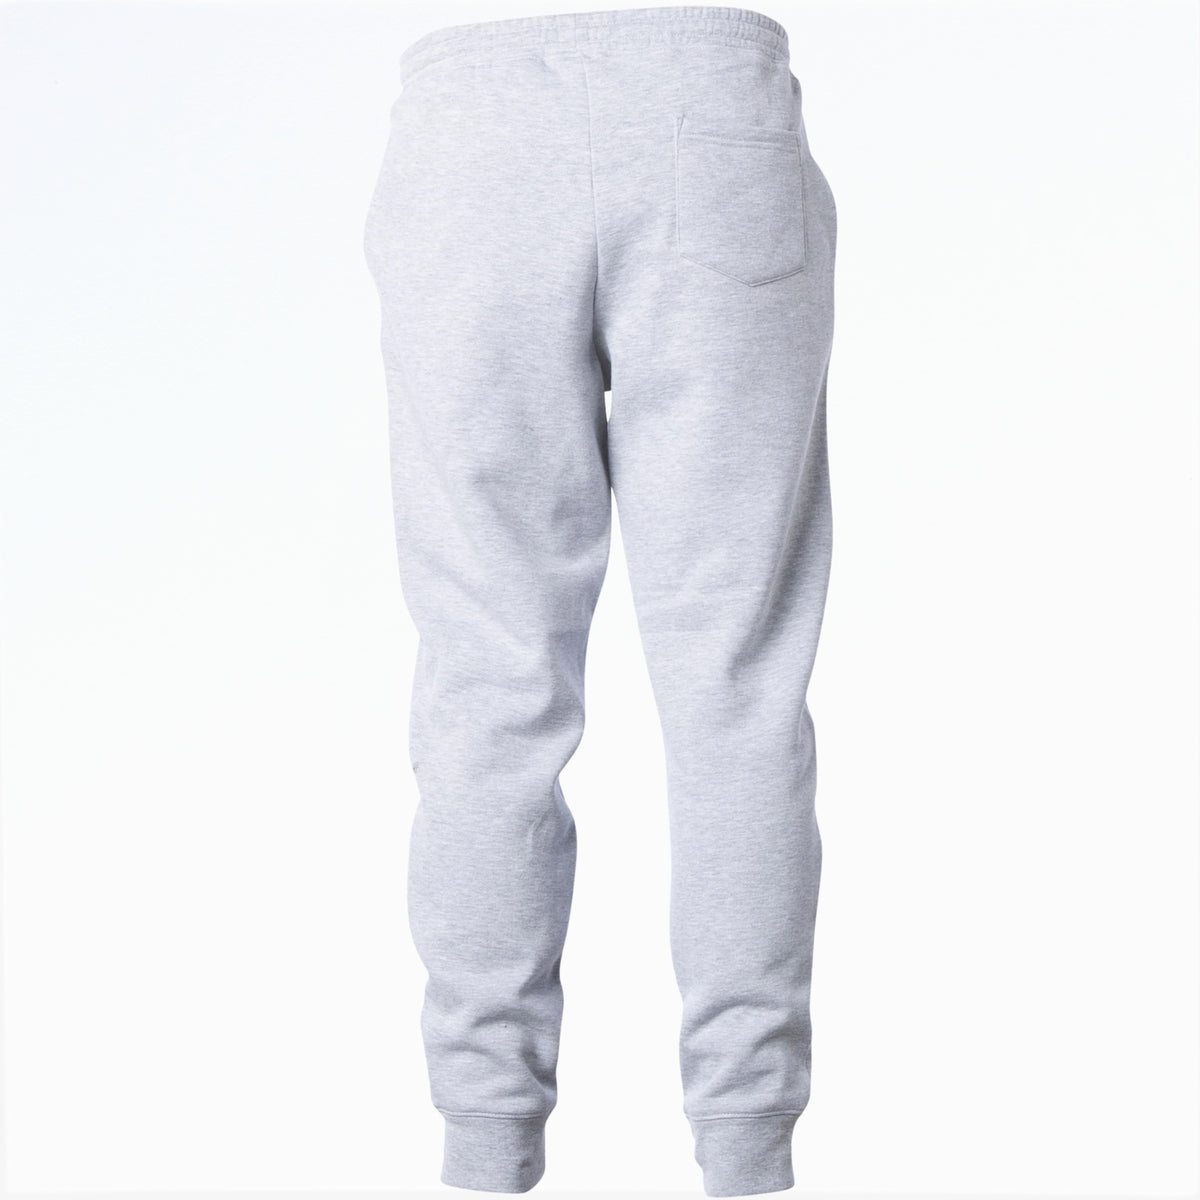 GREY JOGGERS - I.AM.LUV by V